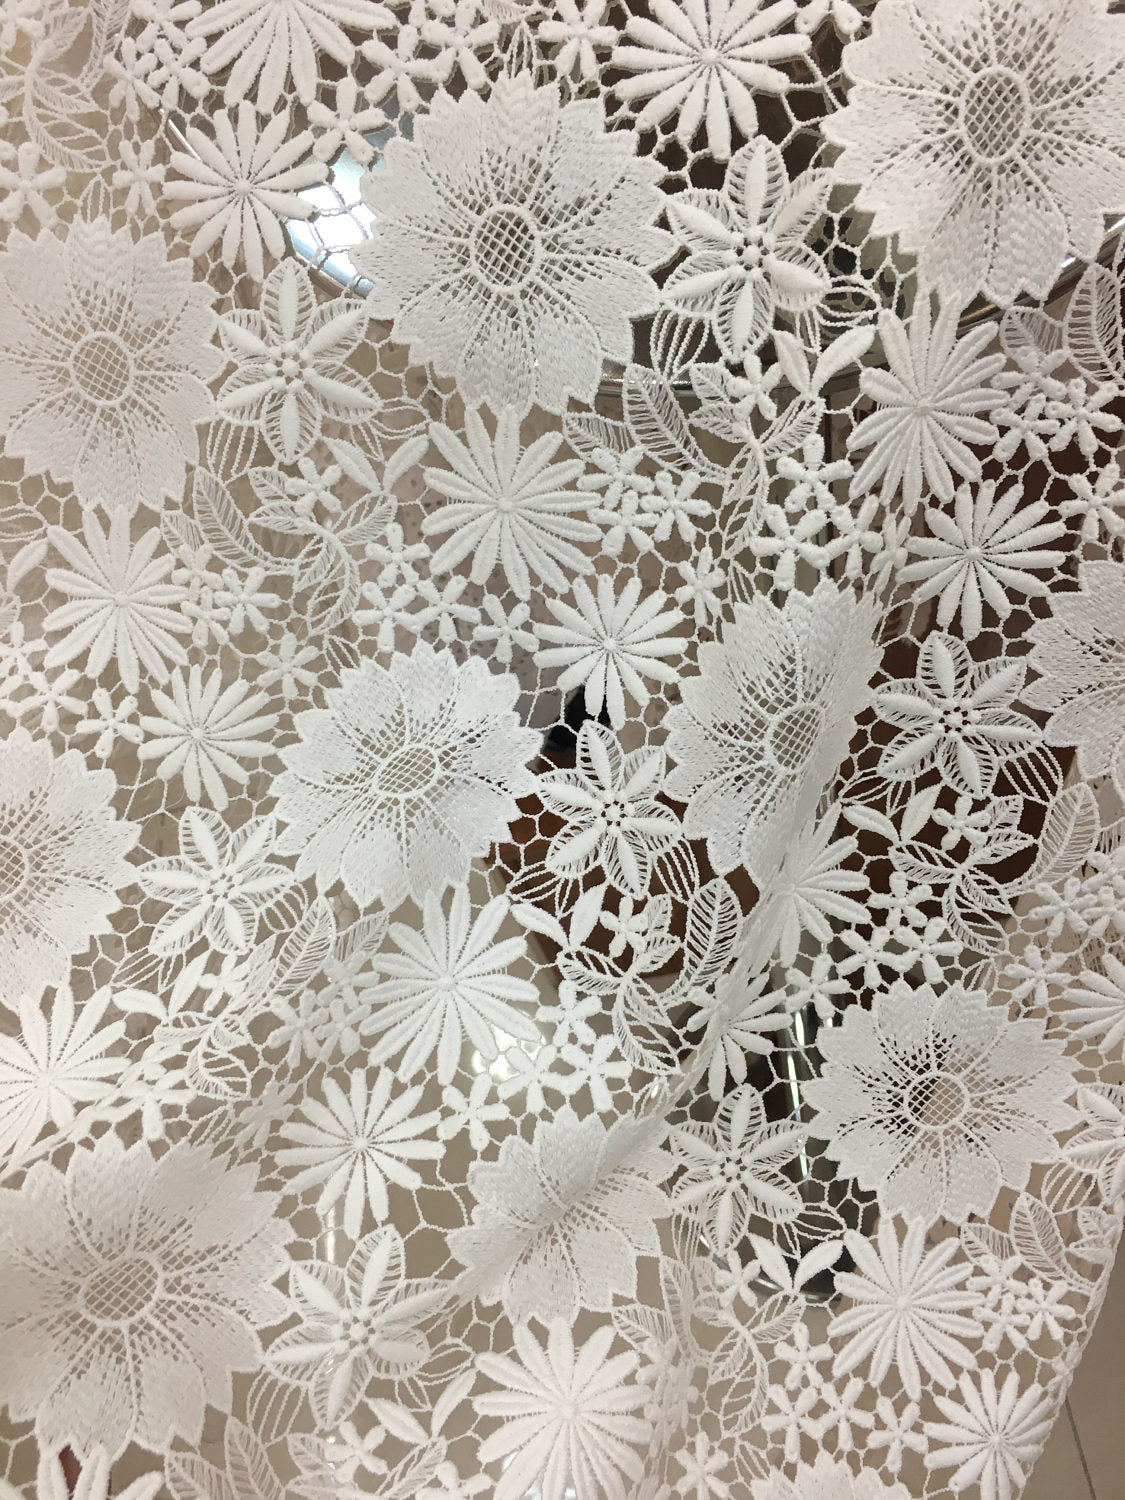 off white lace fabric, venise lace fabric, guipure lace fabric with flowers